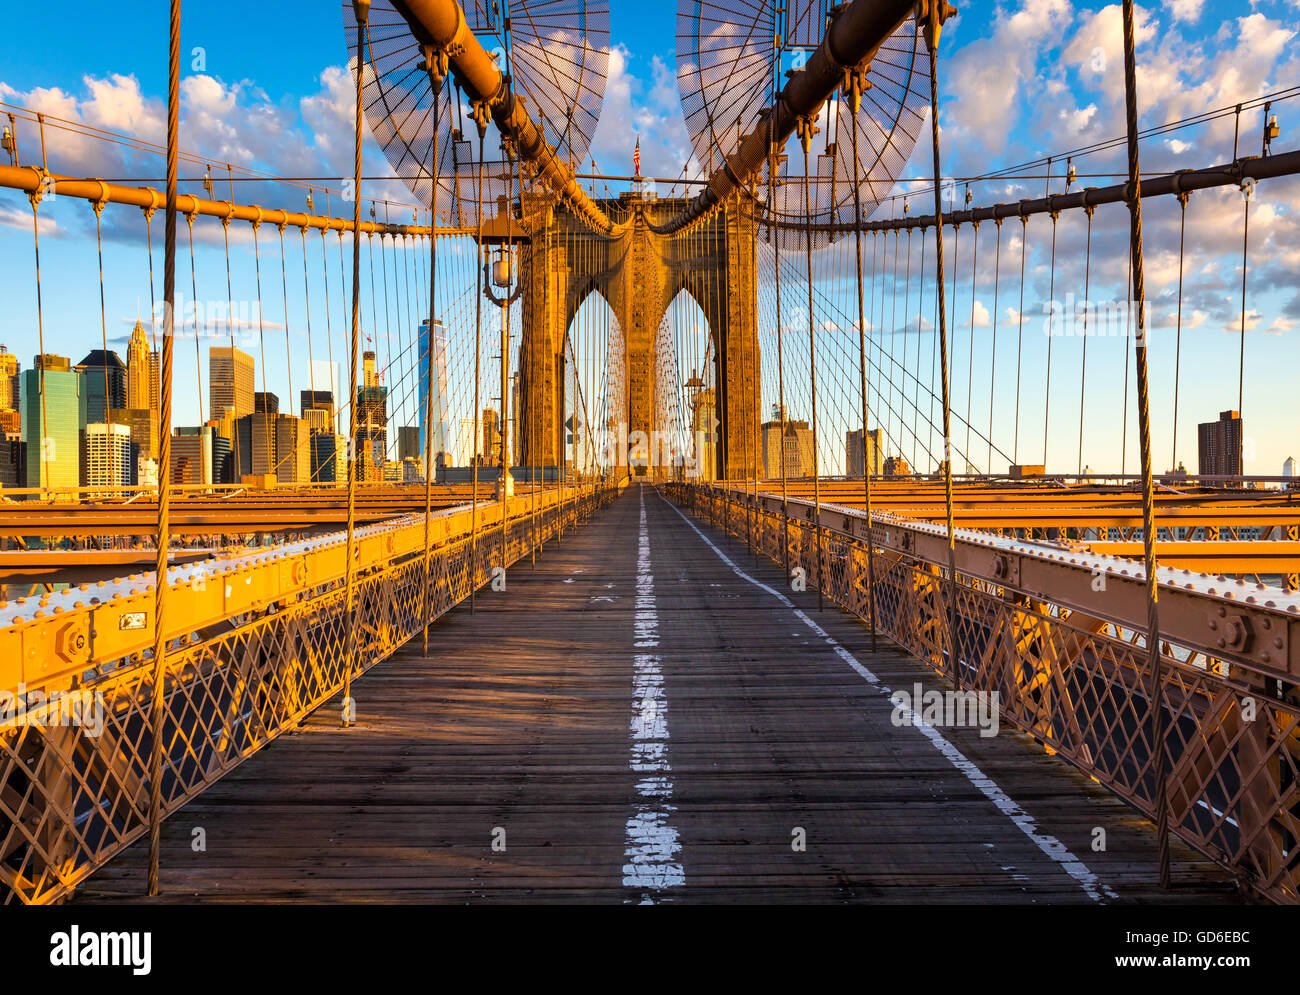 The Brooklyn Bridge in New York City is one of the oldest suspension bridges in the United States - Stock Image